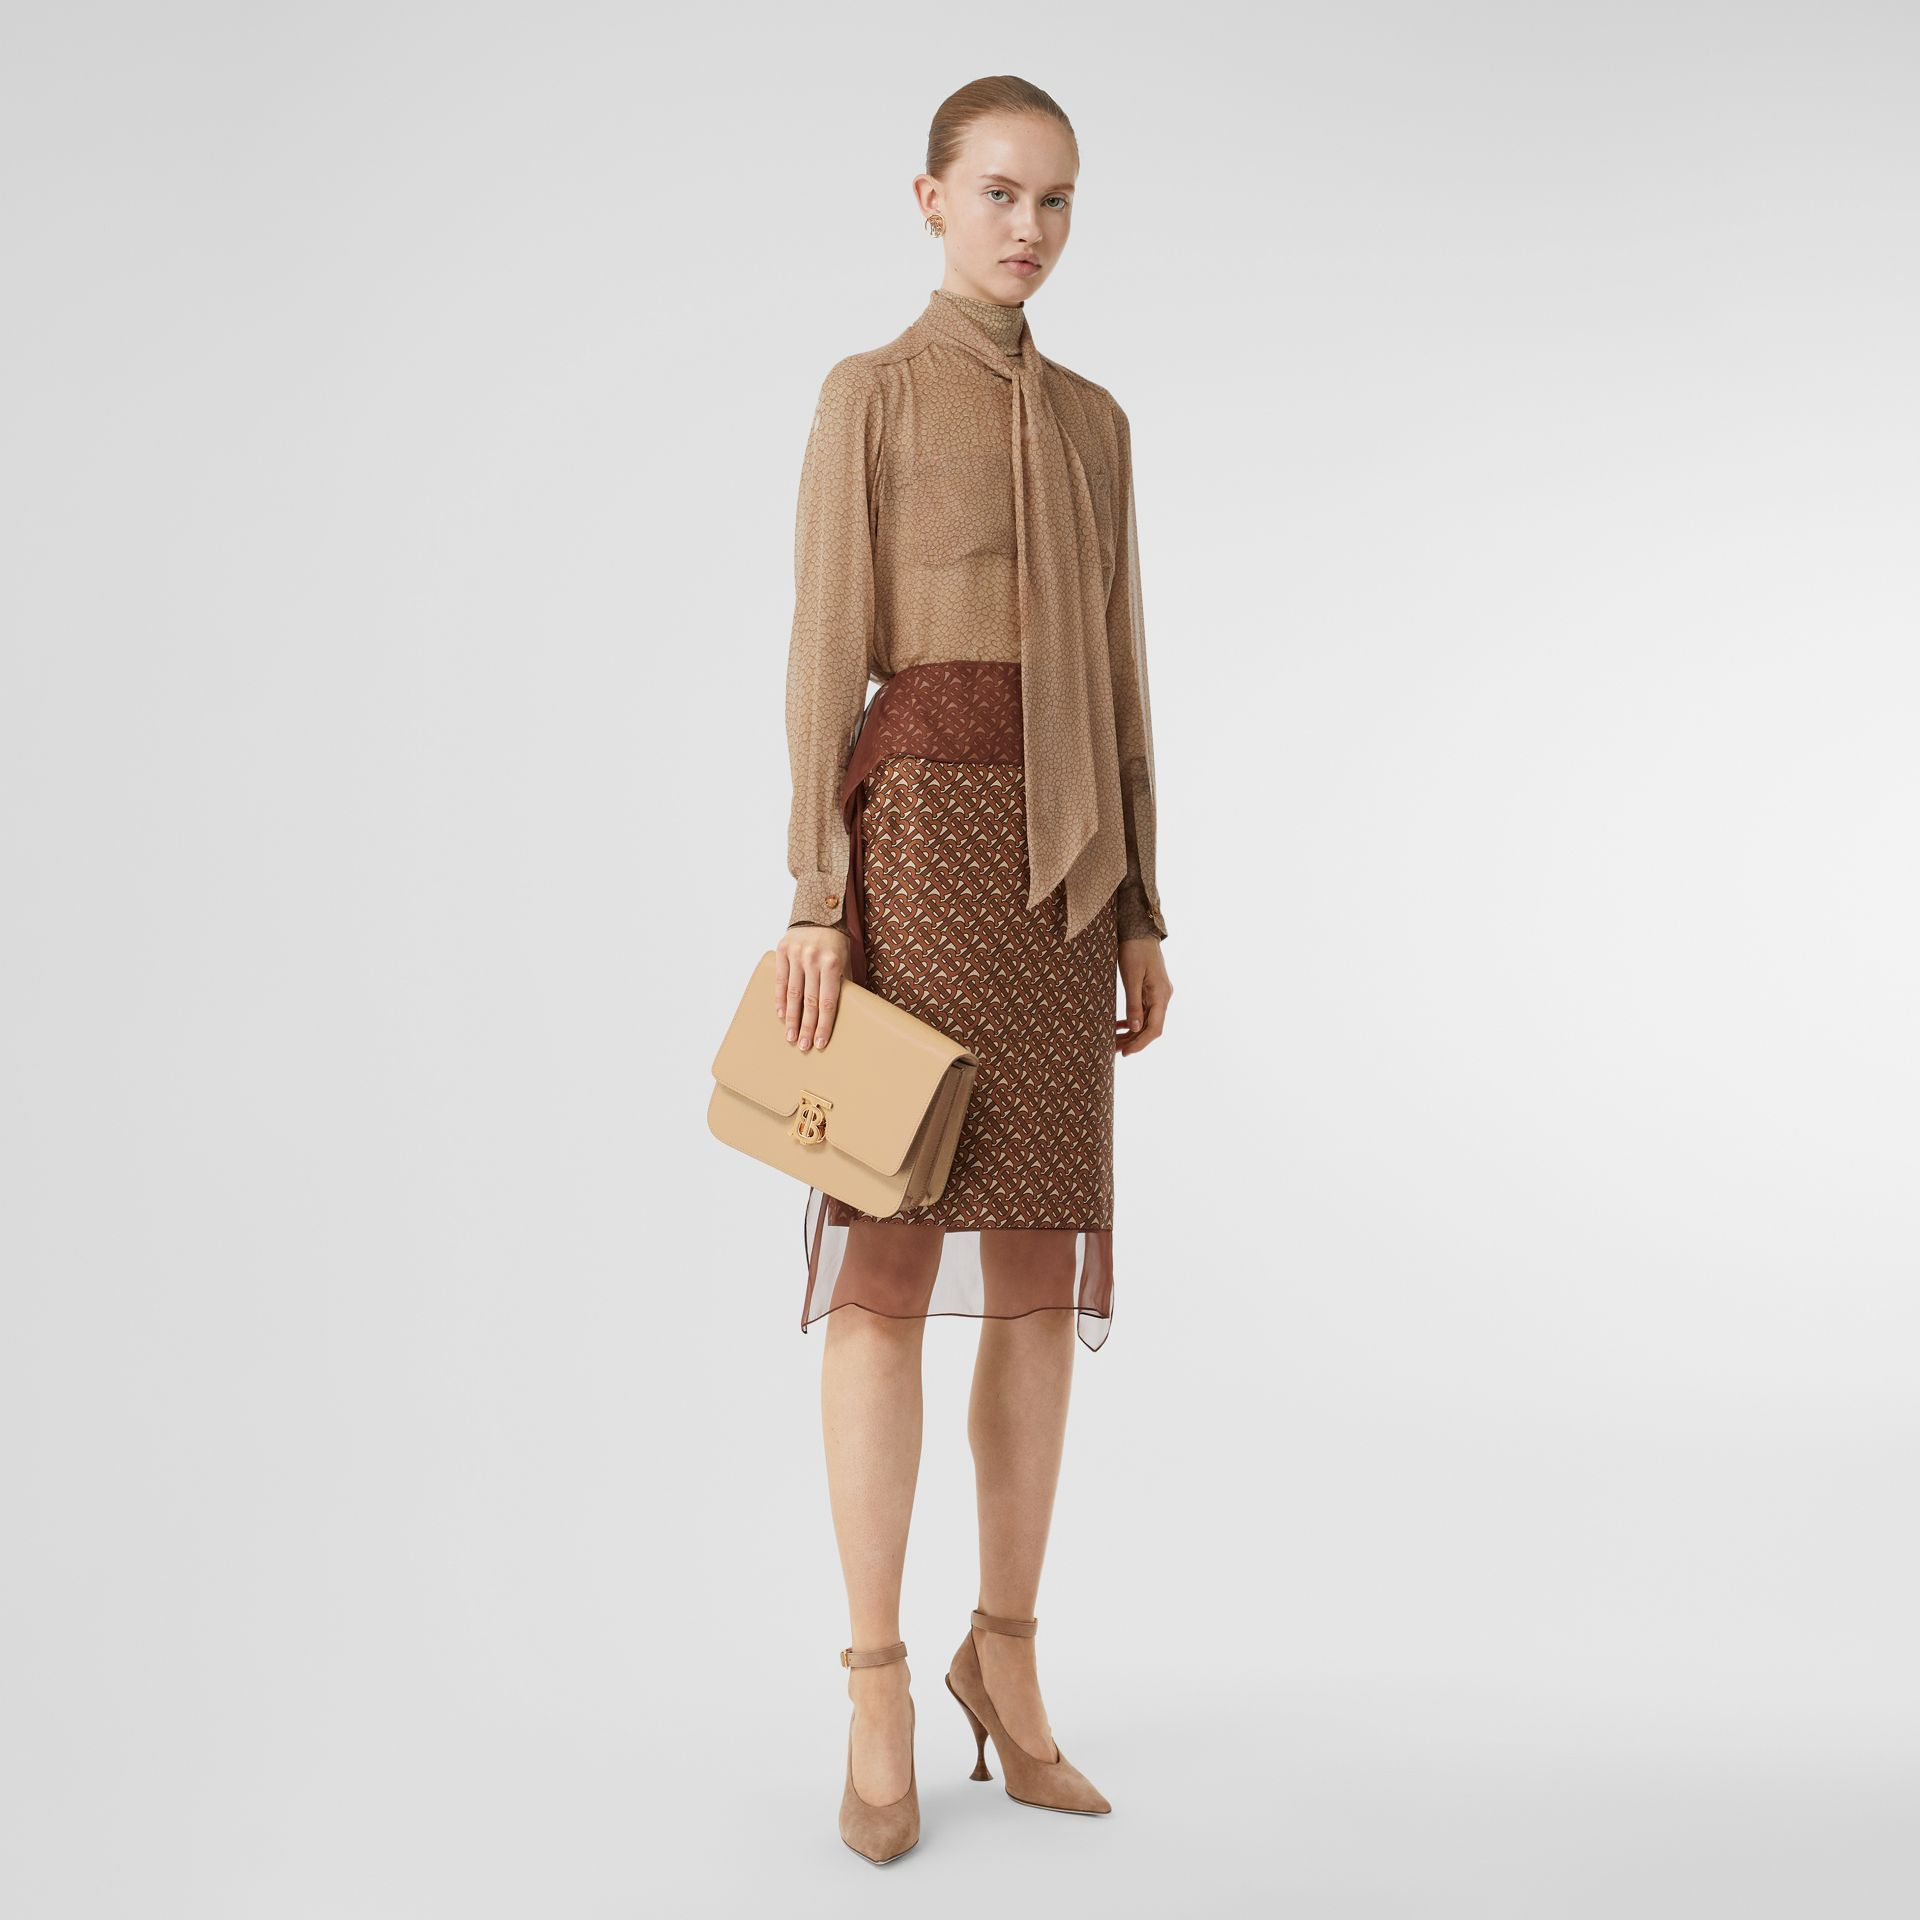 Medium Grainy Leather TB Bag in Archive Beige - Women | Burberry Canada - gallery image 5